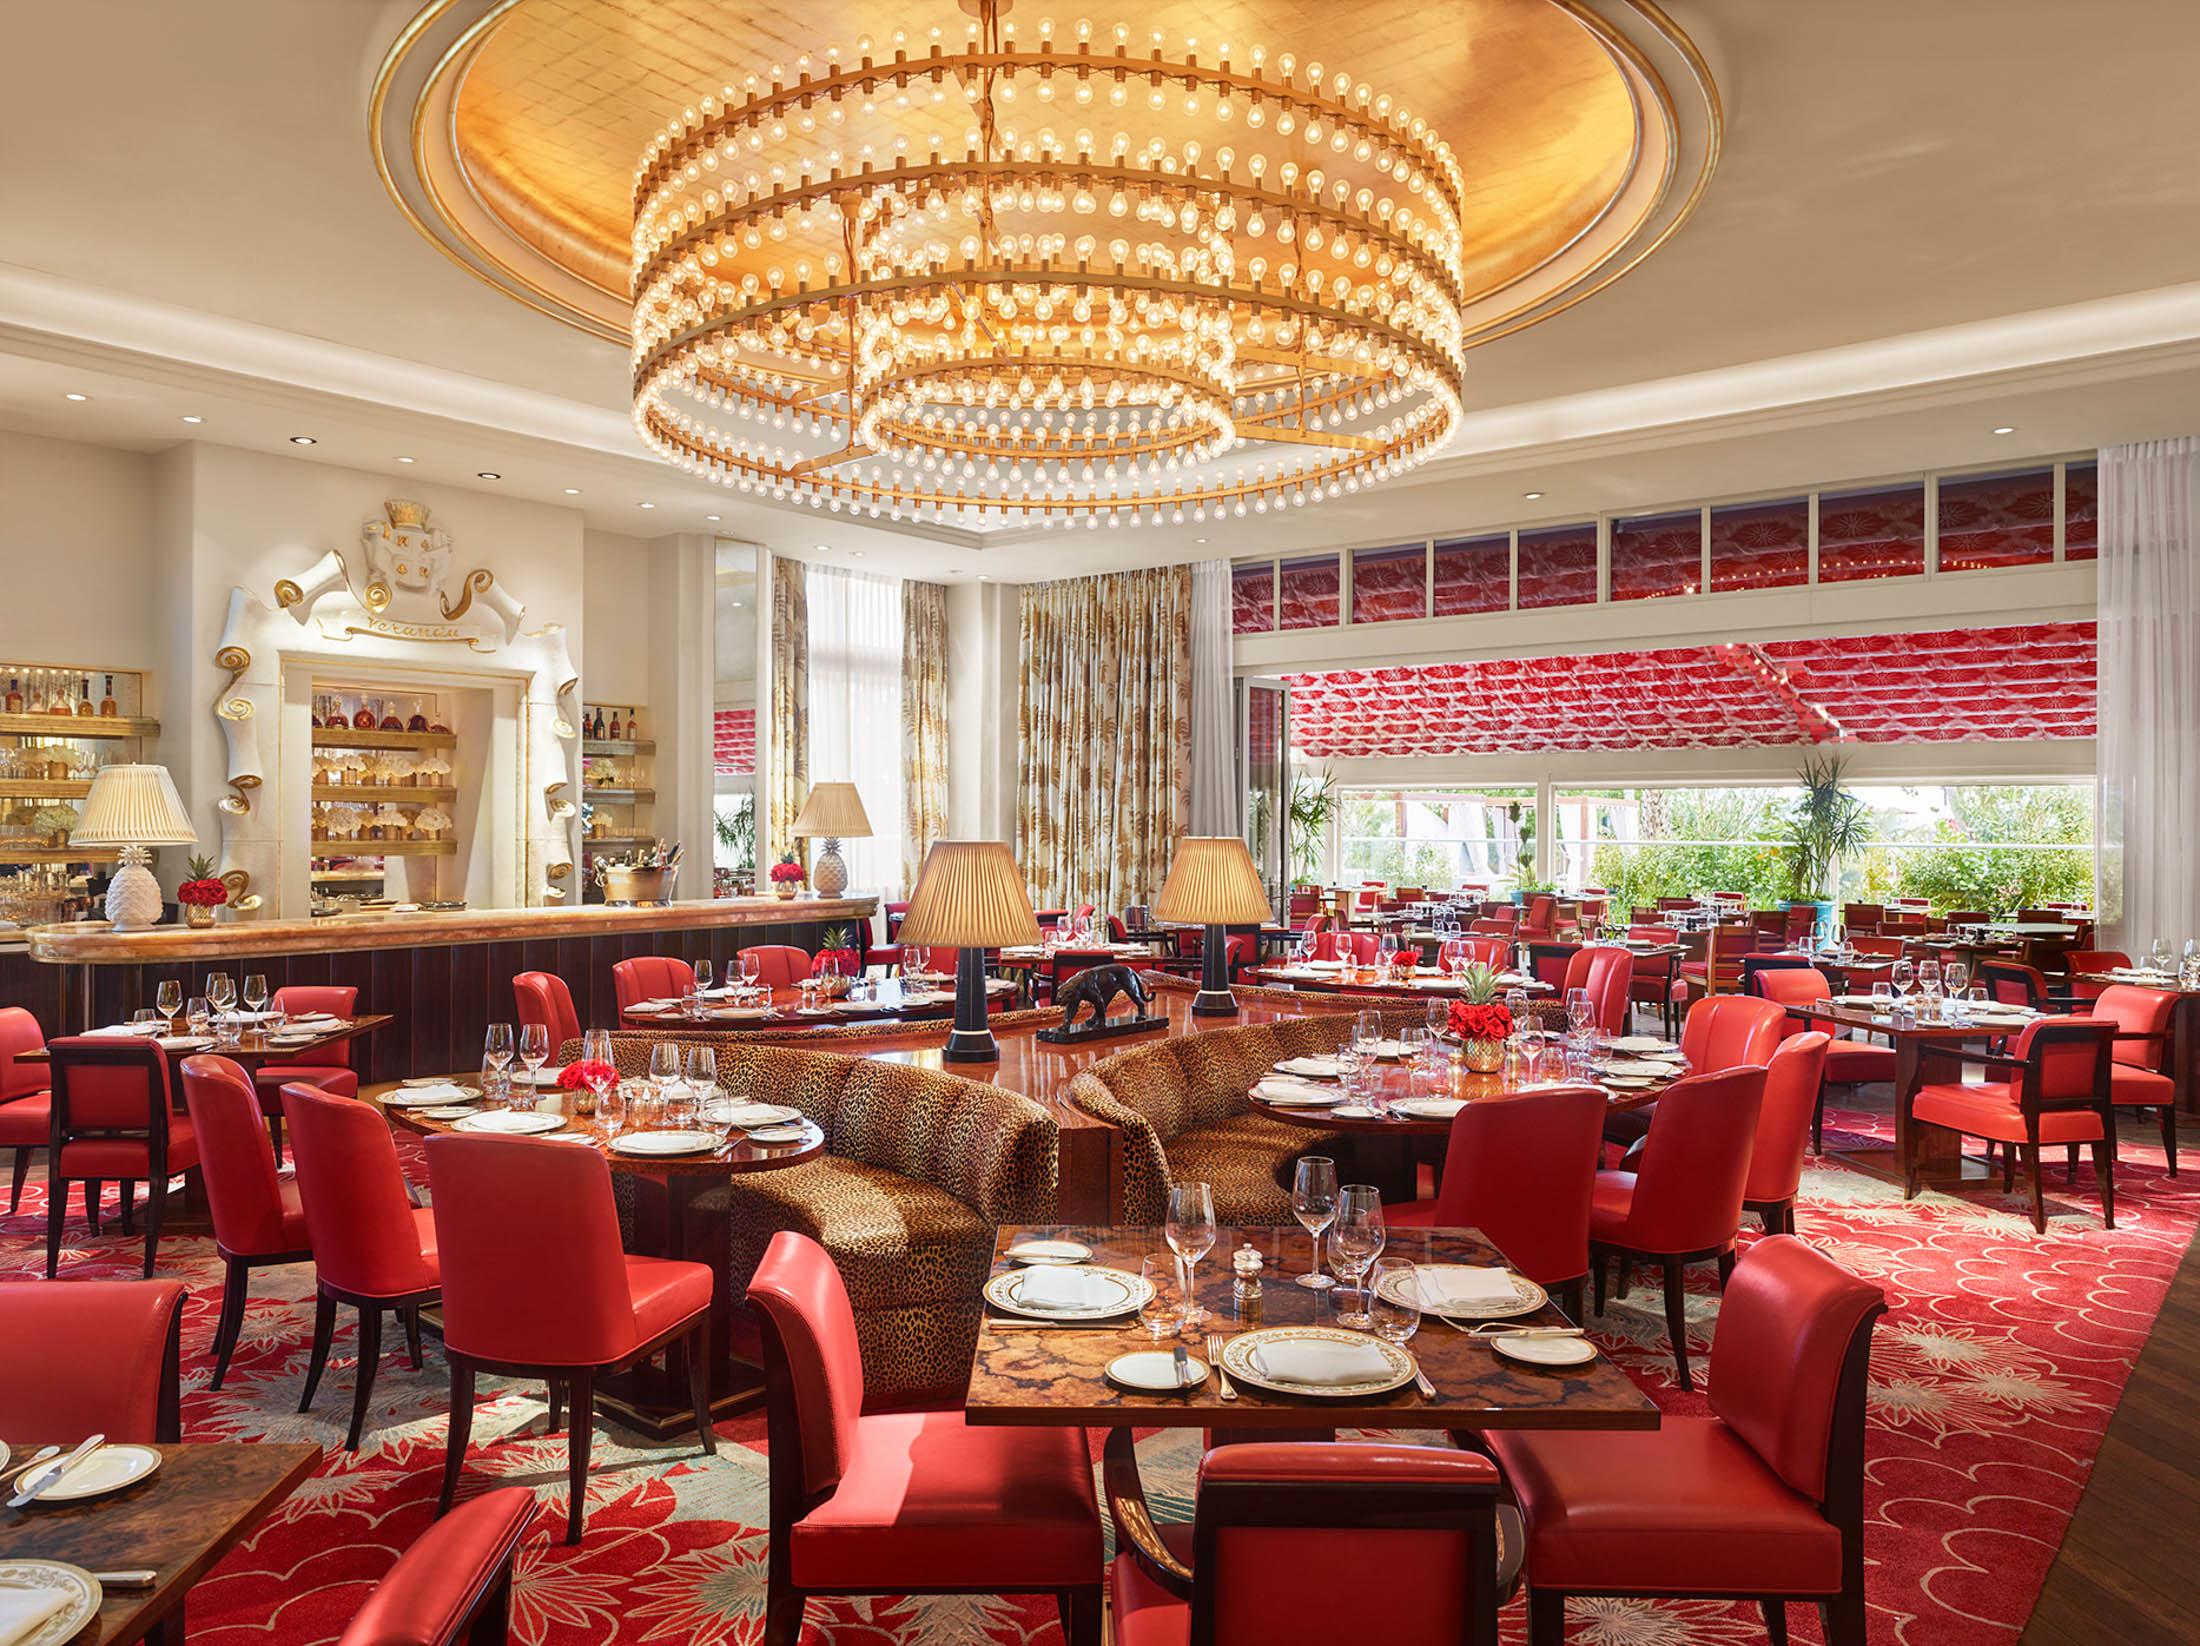 relates to Accor Tightens Its Grip on Luxury Hotel Market With Faena Deal